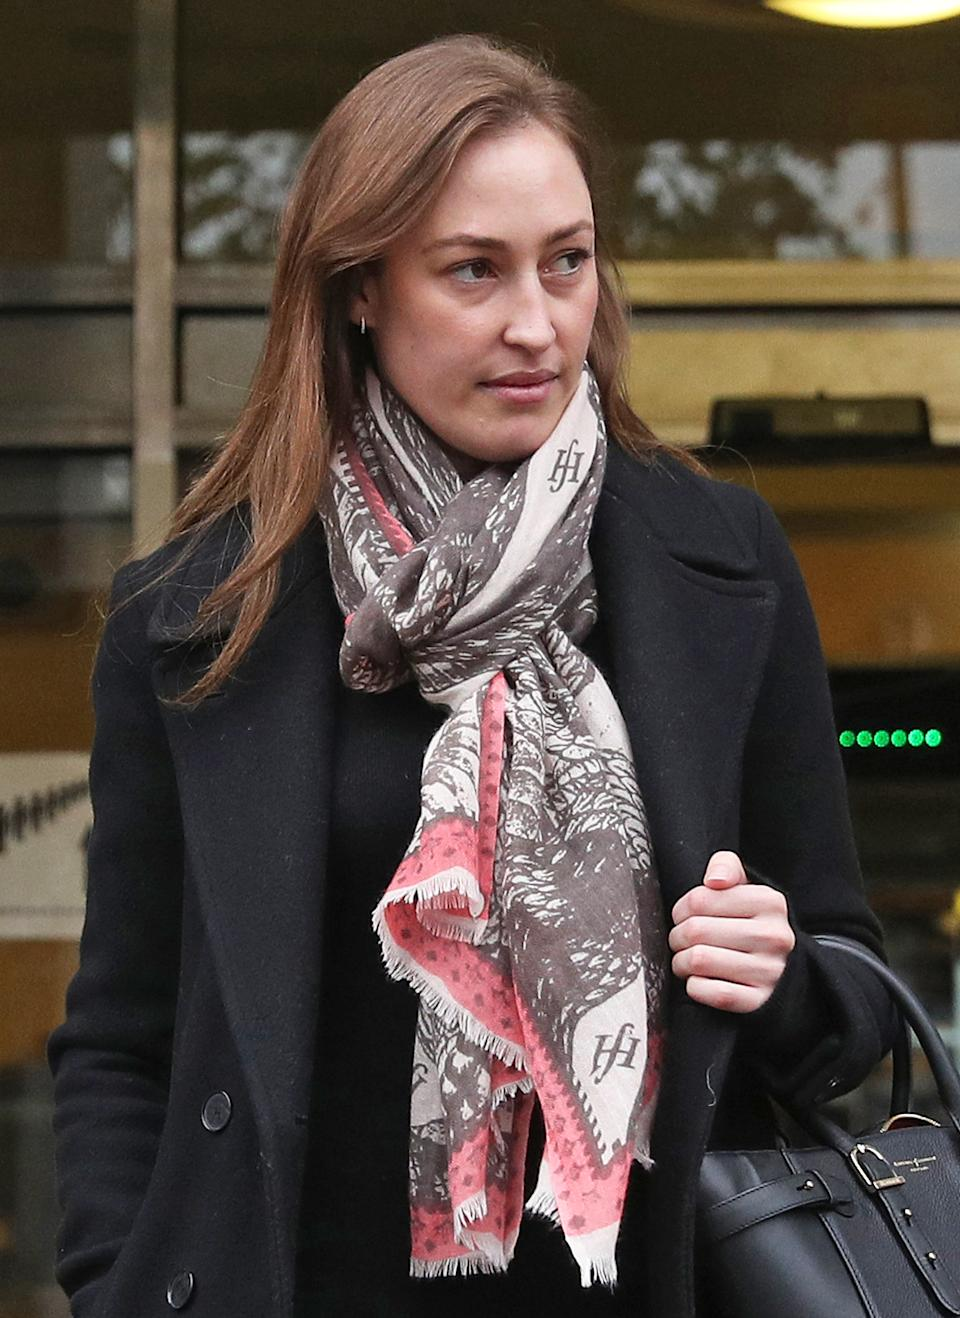 """Tatiana Mountbatten leaves Lavender Hill Magistrates' Court in Battersea, London, after being banned from driving for speeding three times in 10 days despite claiming it would place """"significant hardship"""" on her and her business."""